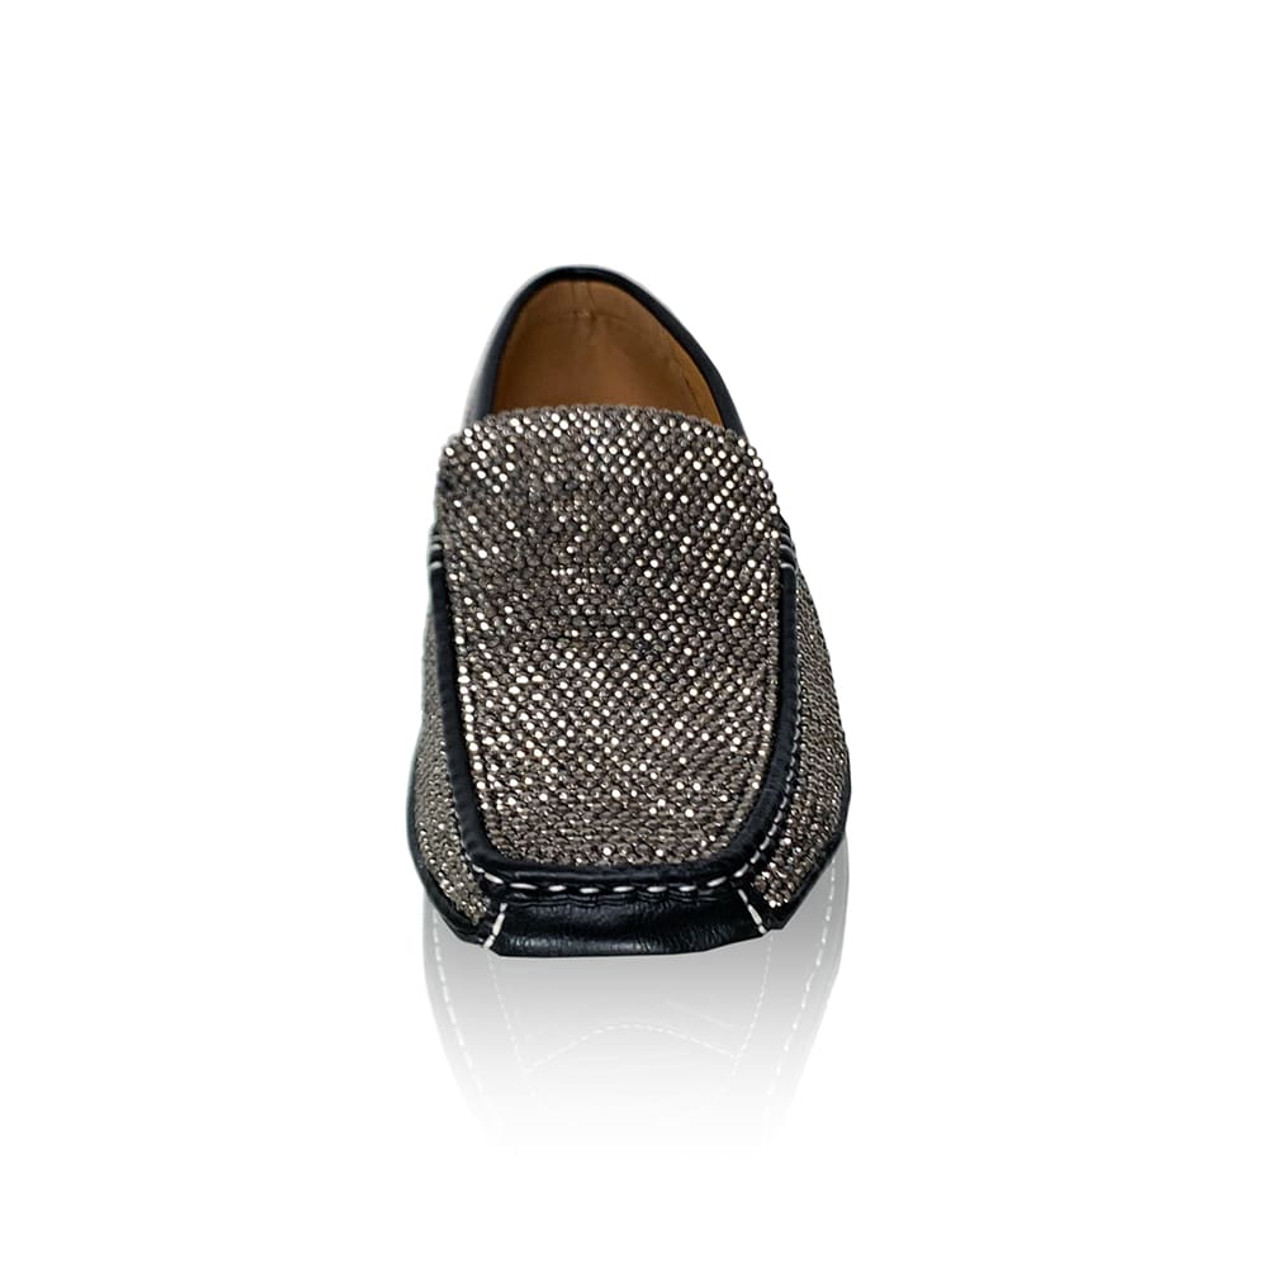 Hematite Crystal Loafer